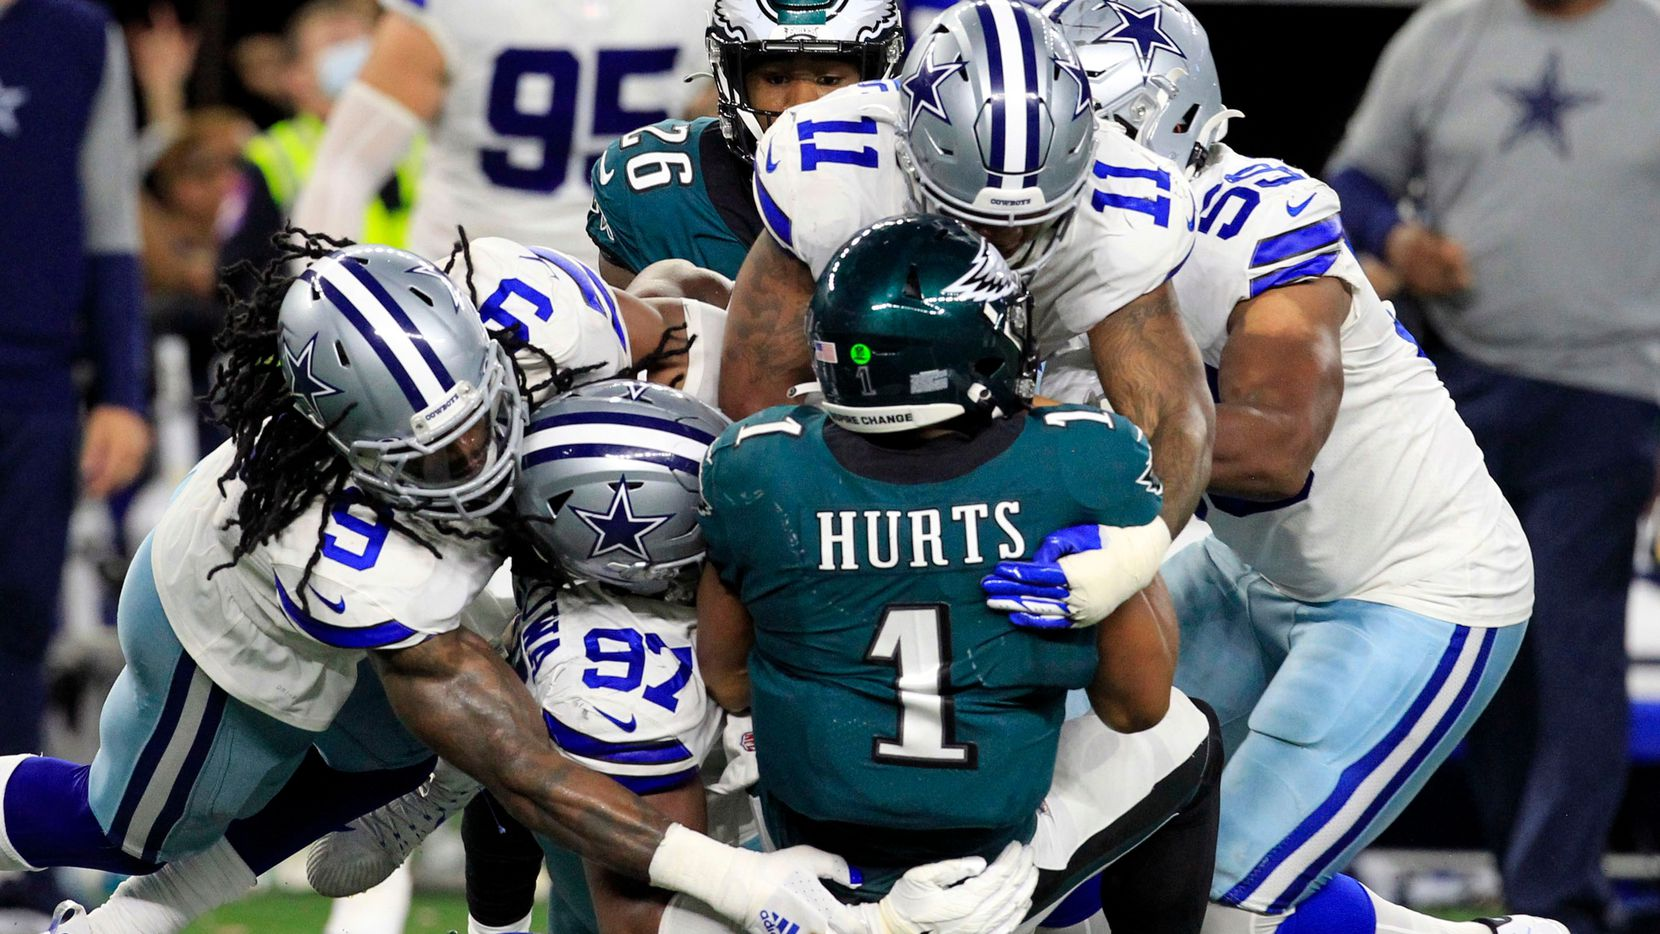 Philadelphia Eagles quarterback Jalen Hurts (1) is swarmed by Dallas Cowboys defenders, including middle linebacker Jaylon Smith (9); defensive tackle Osa Odighizuwa (97), and linebacker Micah Parsons (11) during the second half of a NFL football game at AT&T Stadium in Arlington on Monday, September 27, 2021. (John F. Rhodes / Special Contributor)